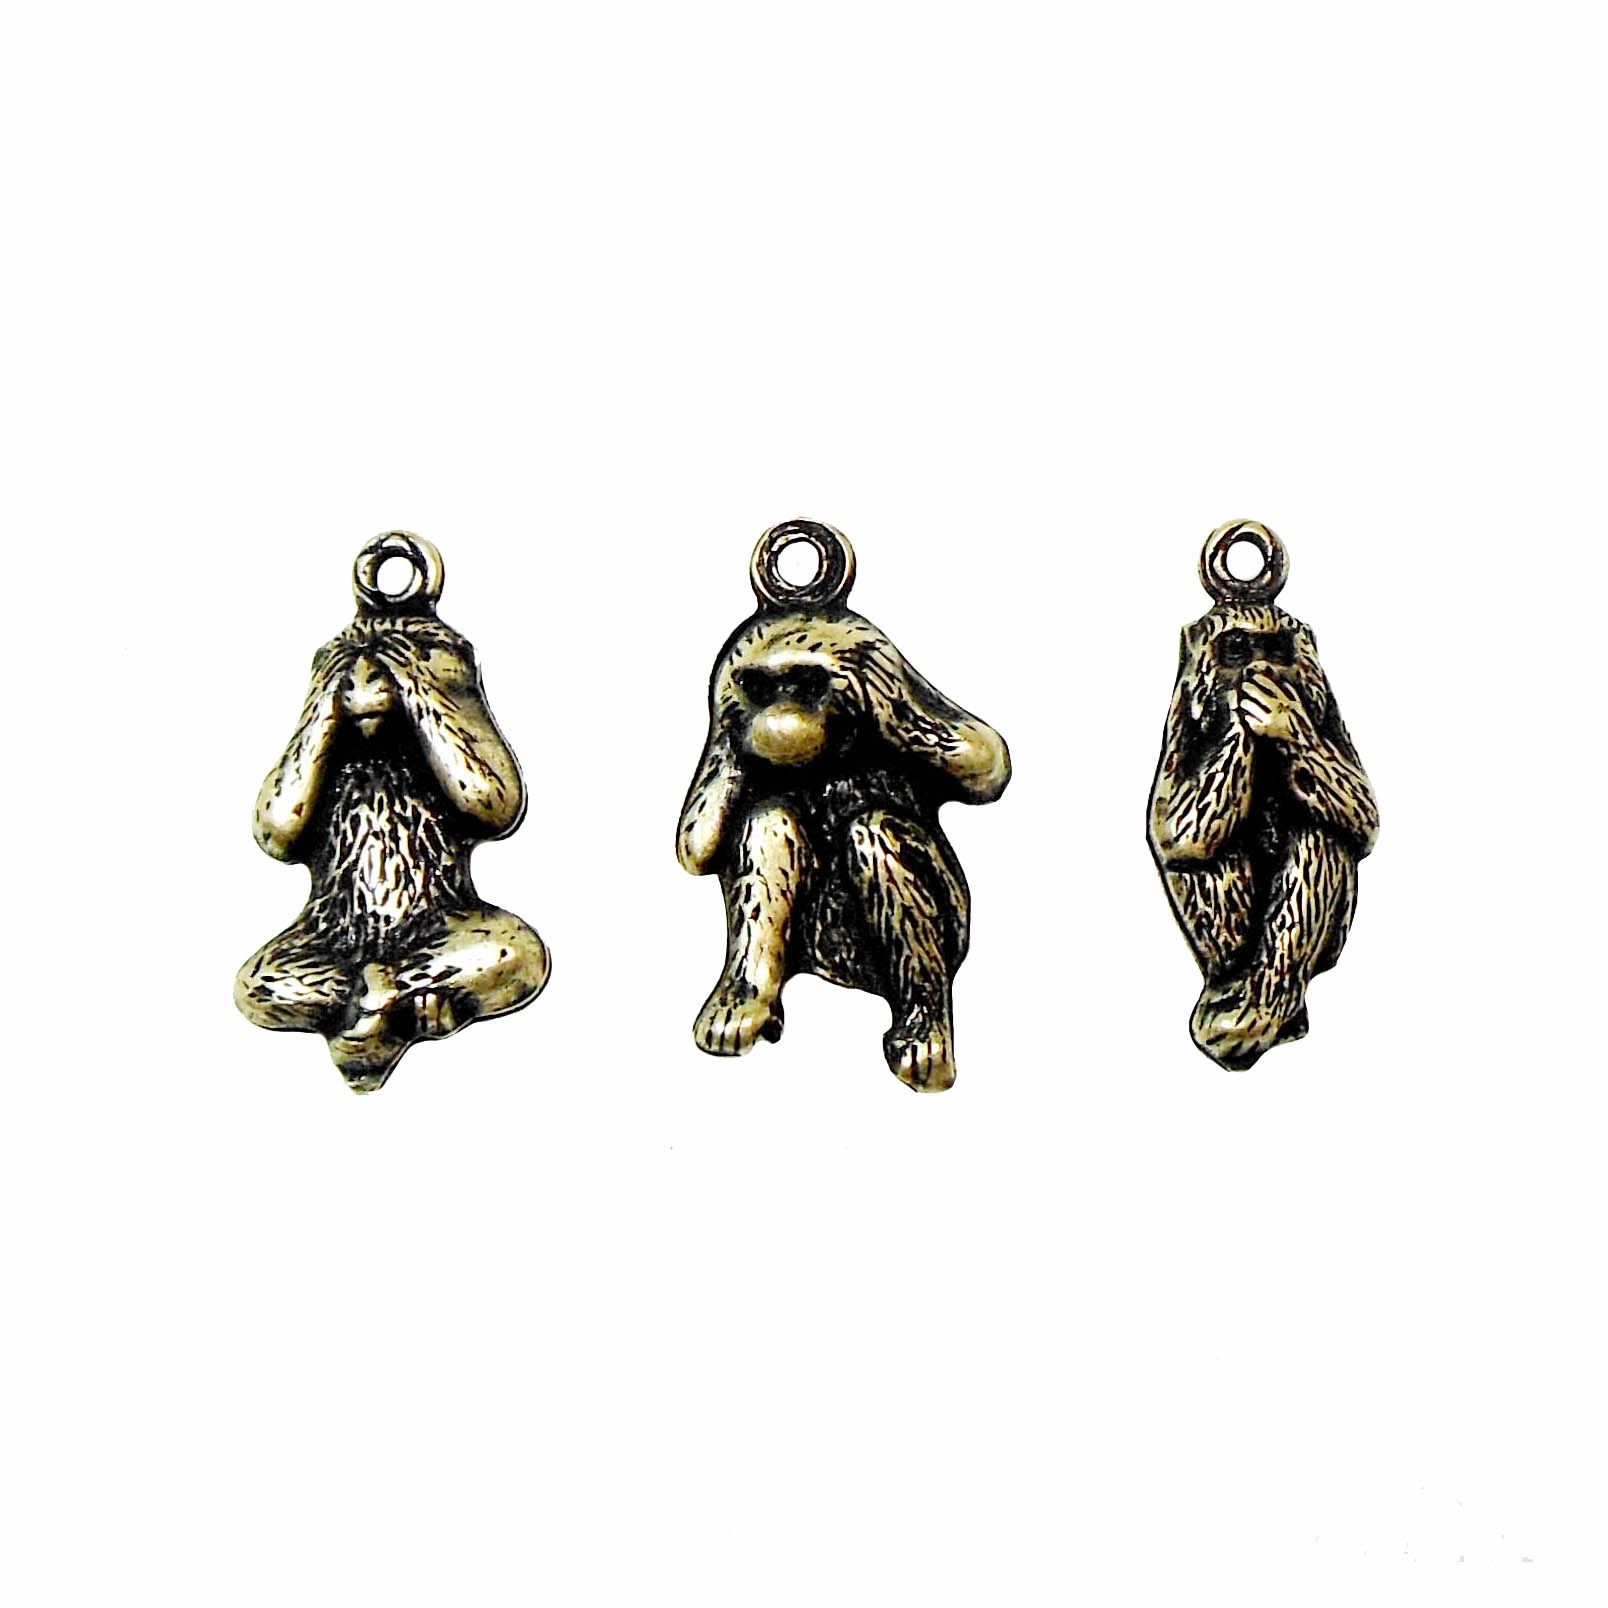 Brass Monkeys, See No, Hear No, Speak No, Brass Ox, Anitque Brass, Great detail, Puffy charms, 16mm, Set of 3, Monkeys, Charms, Brass Stamping, Jewelry Findings, Charm Accents, Pendent, Two Sided, us made, vintage, Nickel Free, B'sue Boutiques,02290